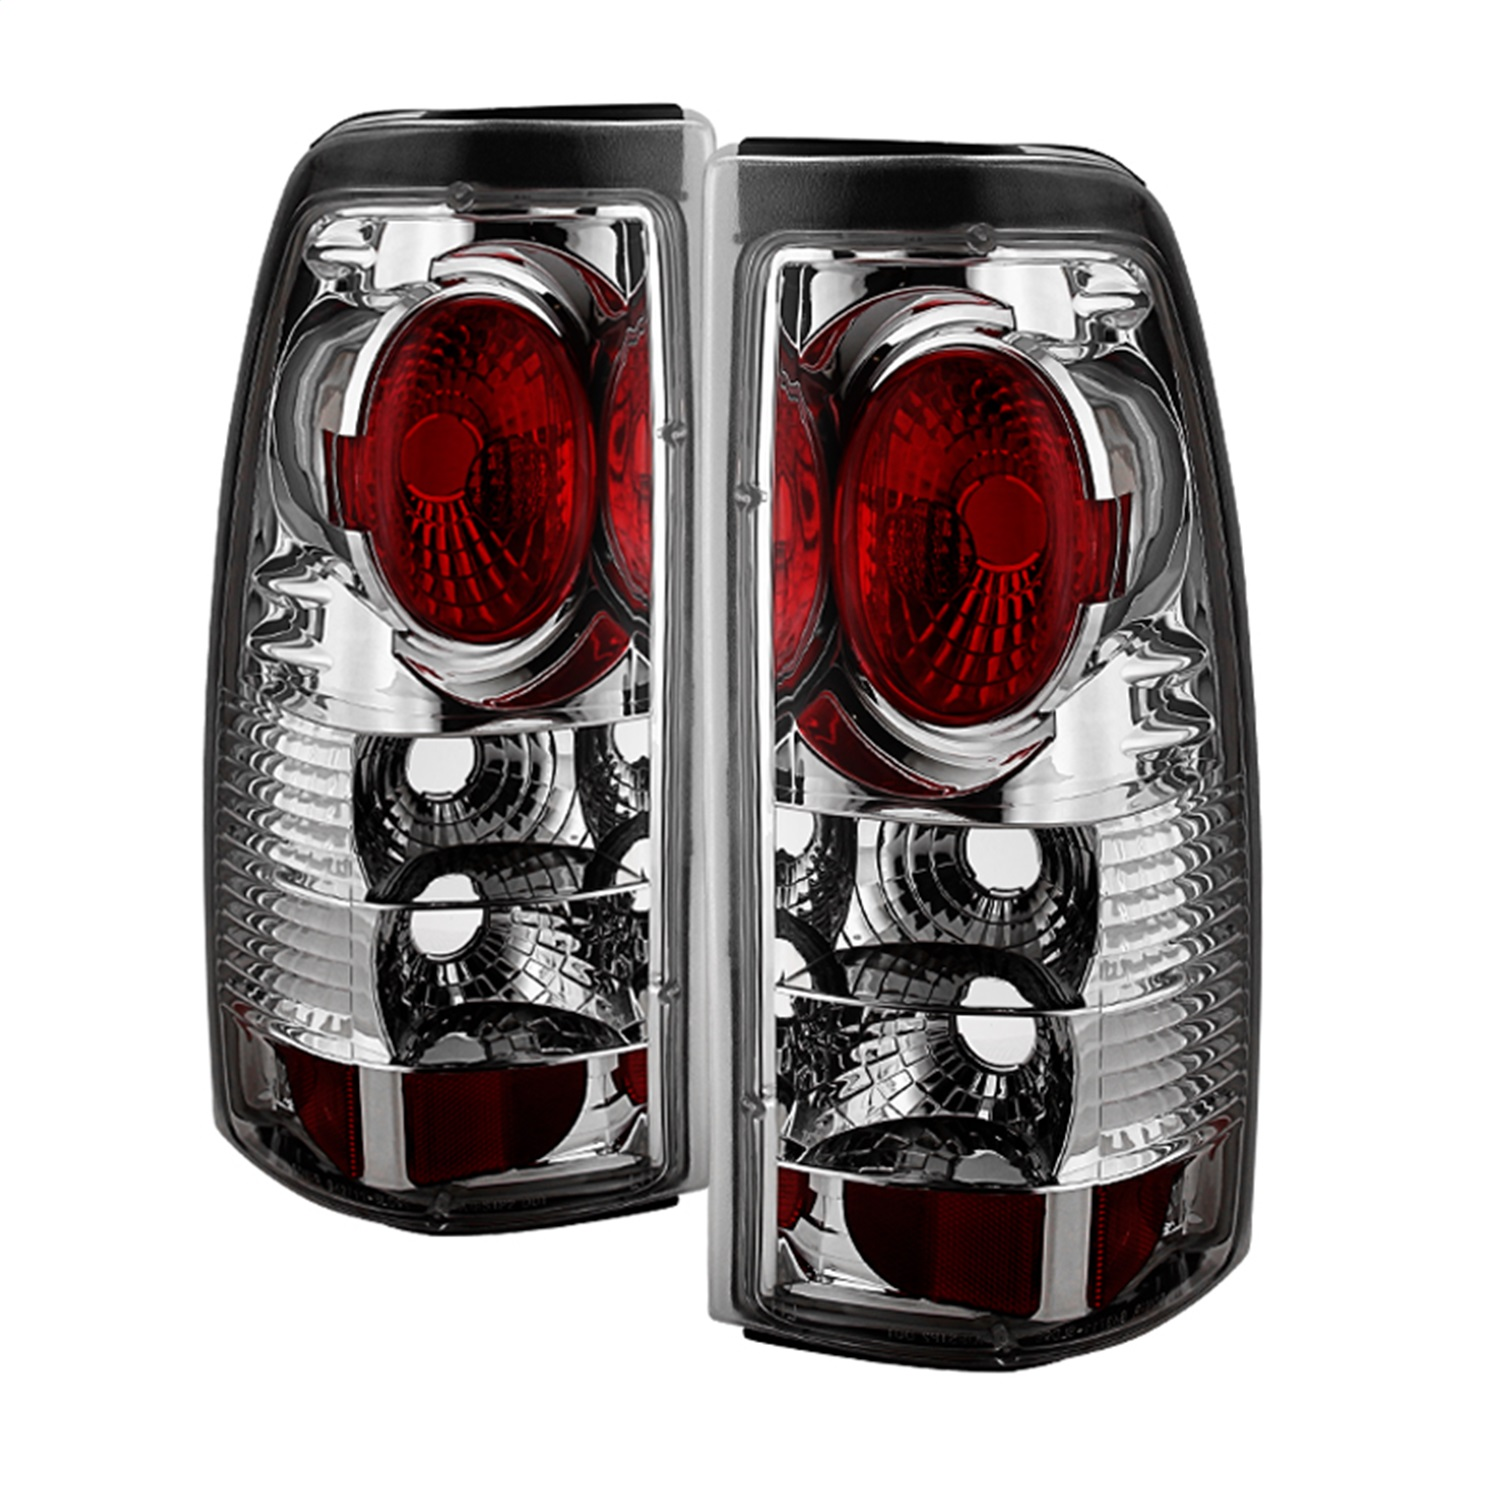 Spyder Auto 5008053 Euro Style Tail Lights Fits 95-98 Tercel